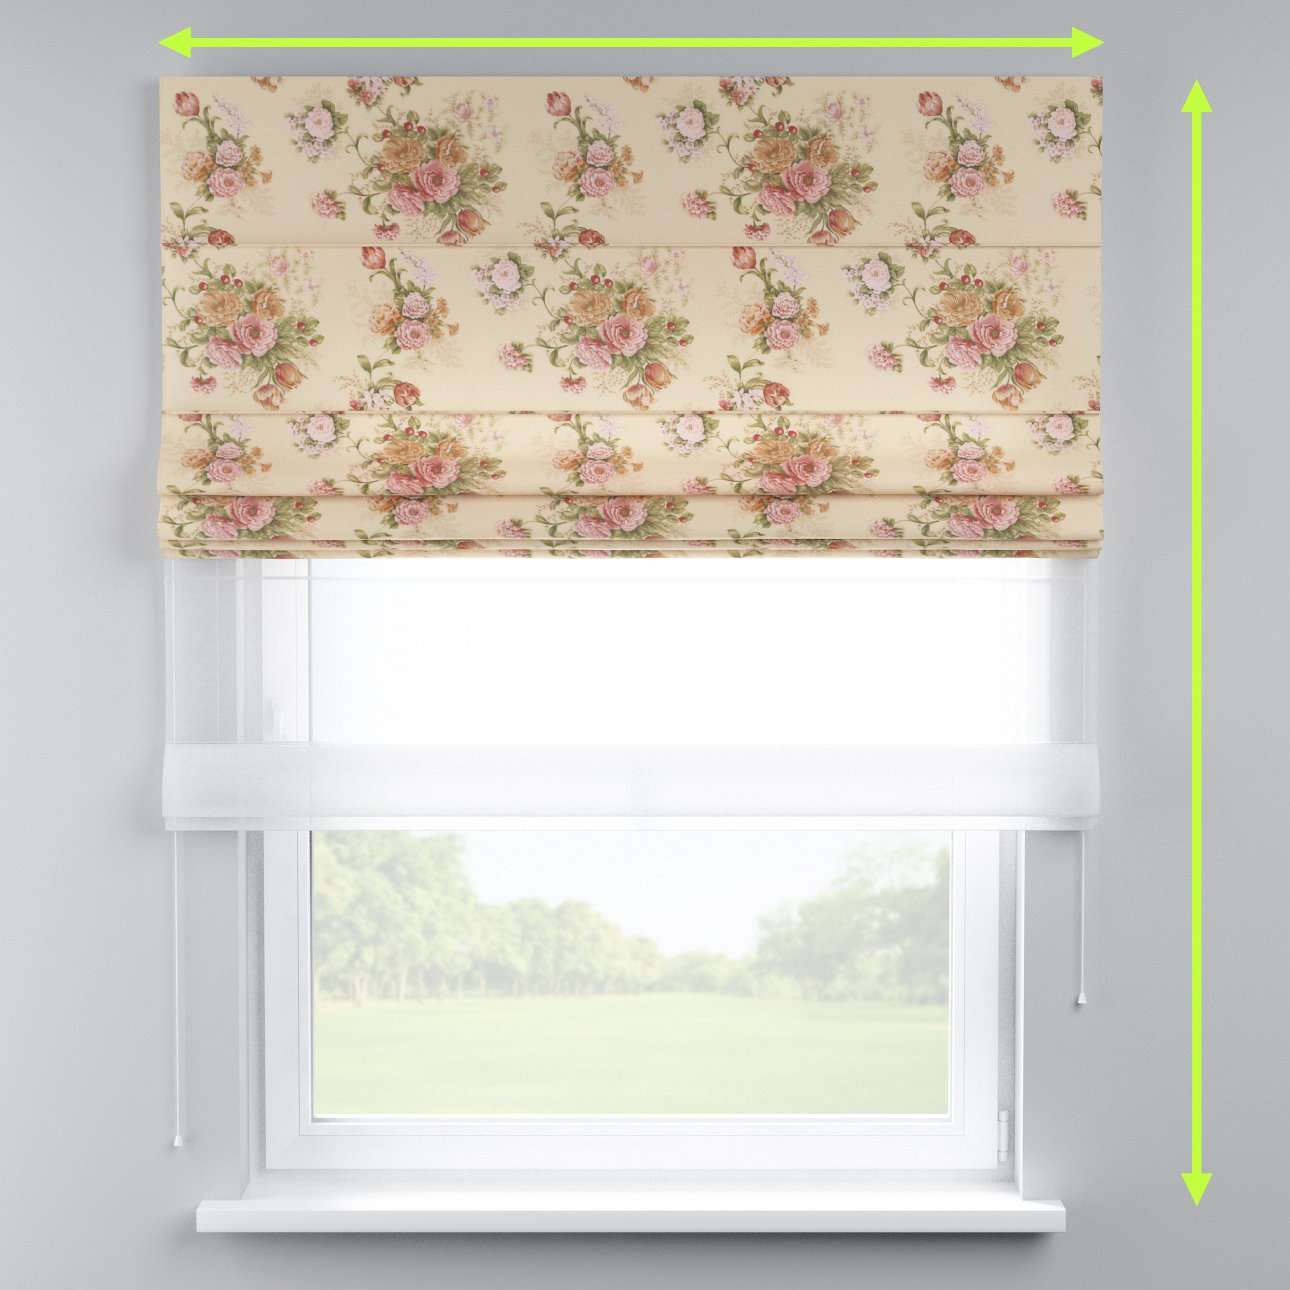 Voile and fabric roman blind (DUO II) in collection Flowers, fabric: 302-01